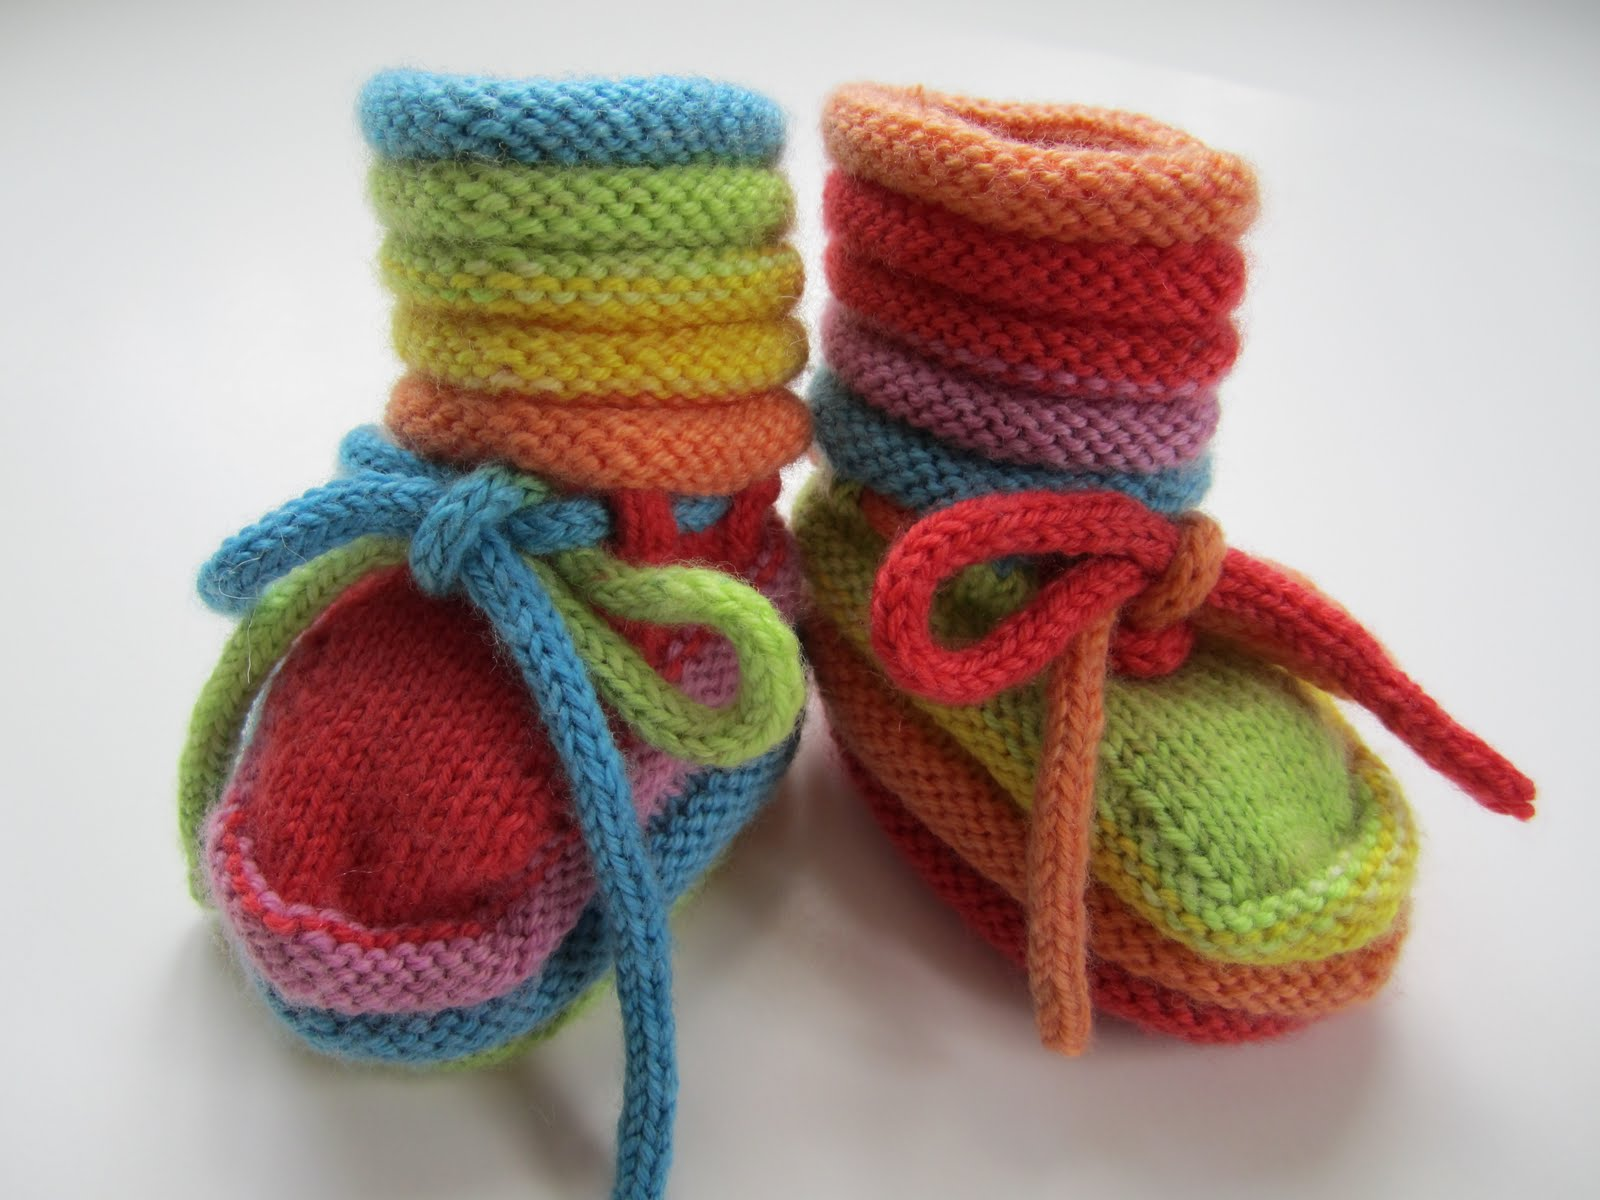 Baby Bootie Knitting Pattern : 32 knit Patterns Baby Shoes For Winter 2016 - Fashion Craze